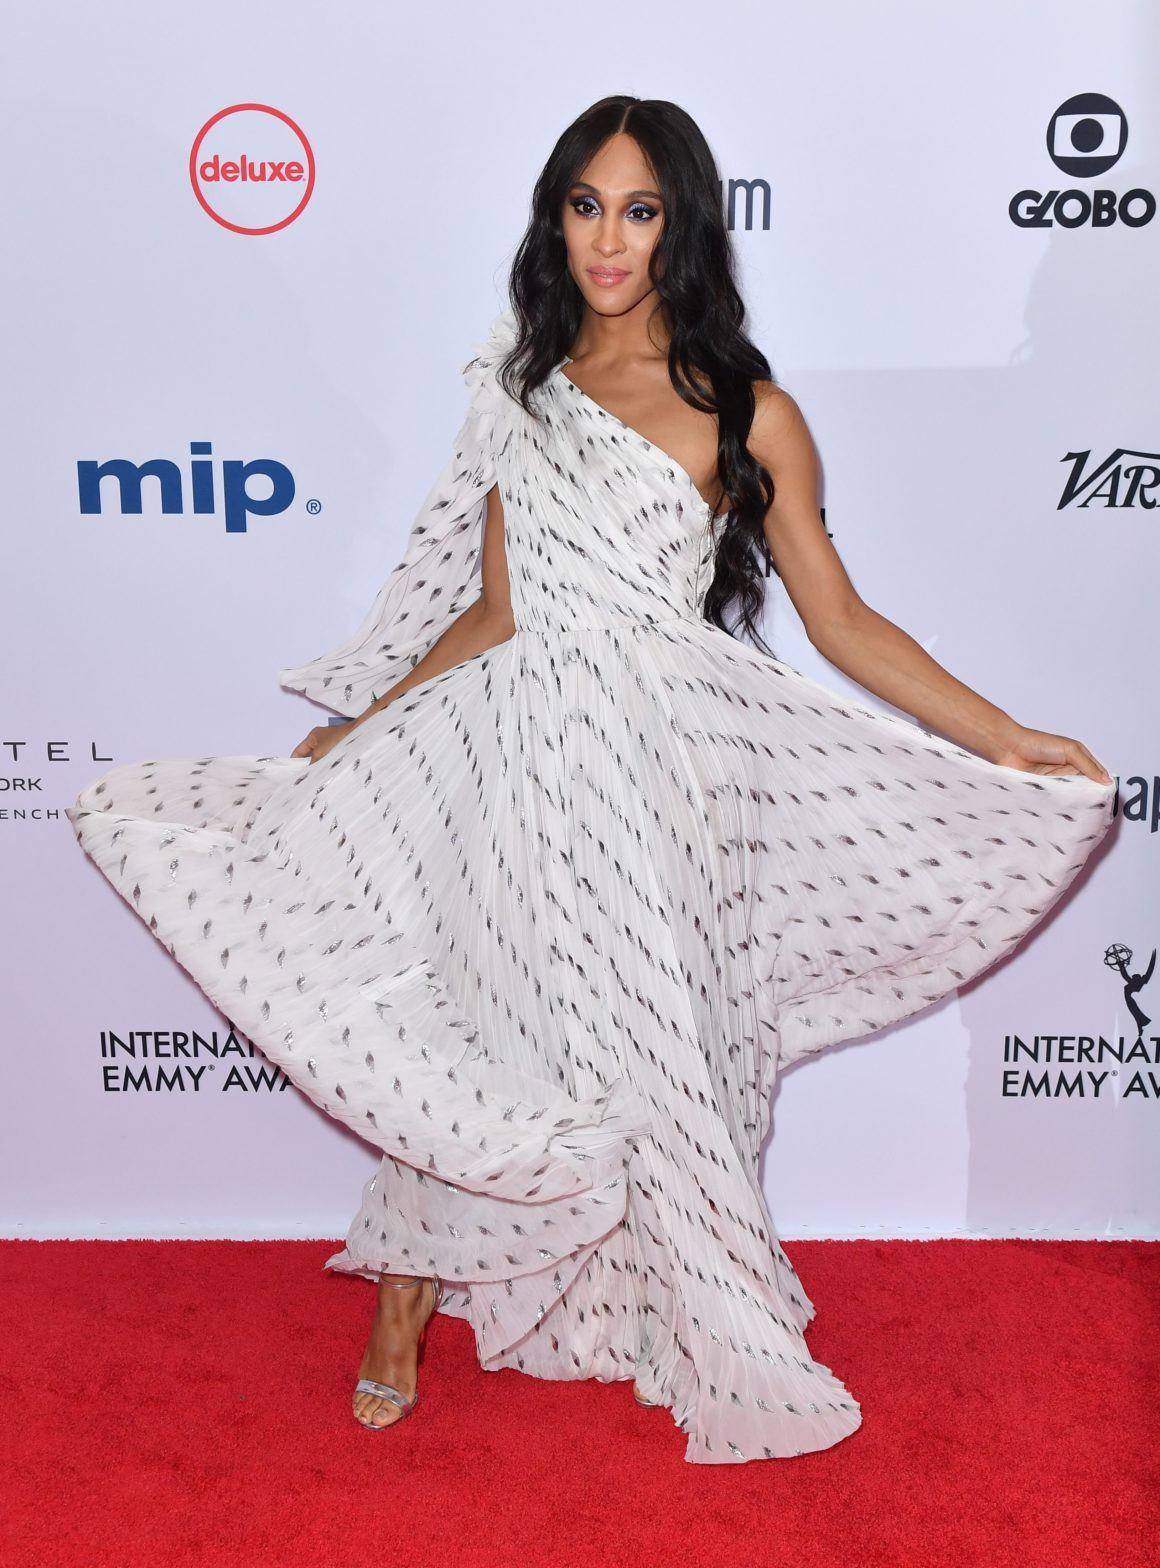 Mj Rodriguez arrives for the 47th Annual International Emmy Awards